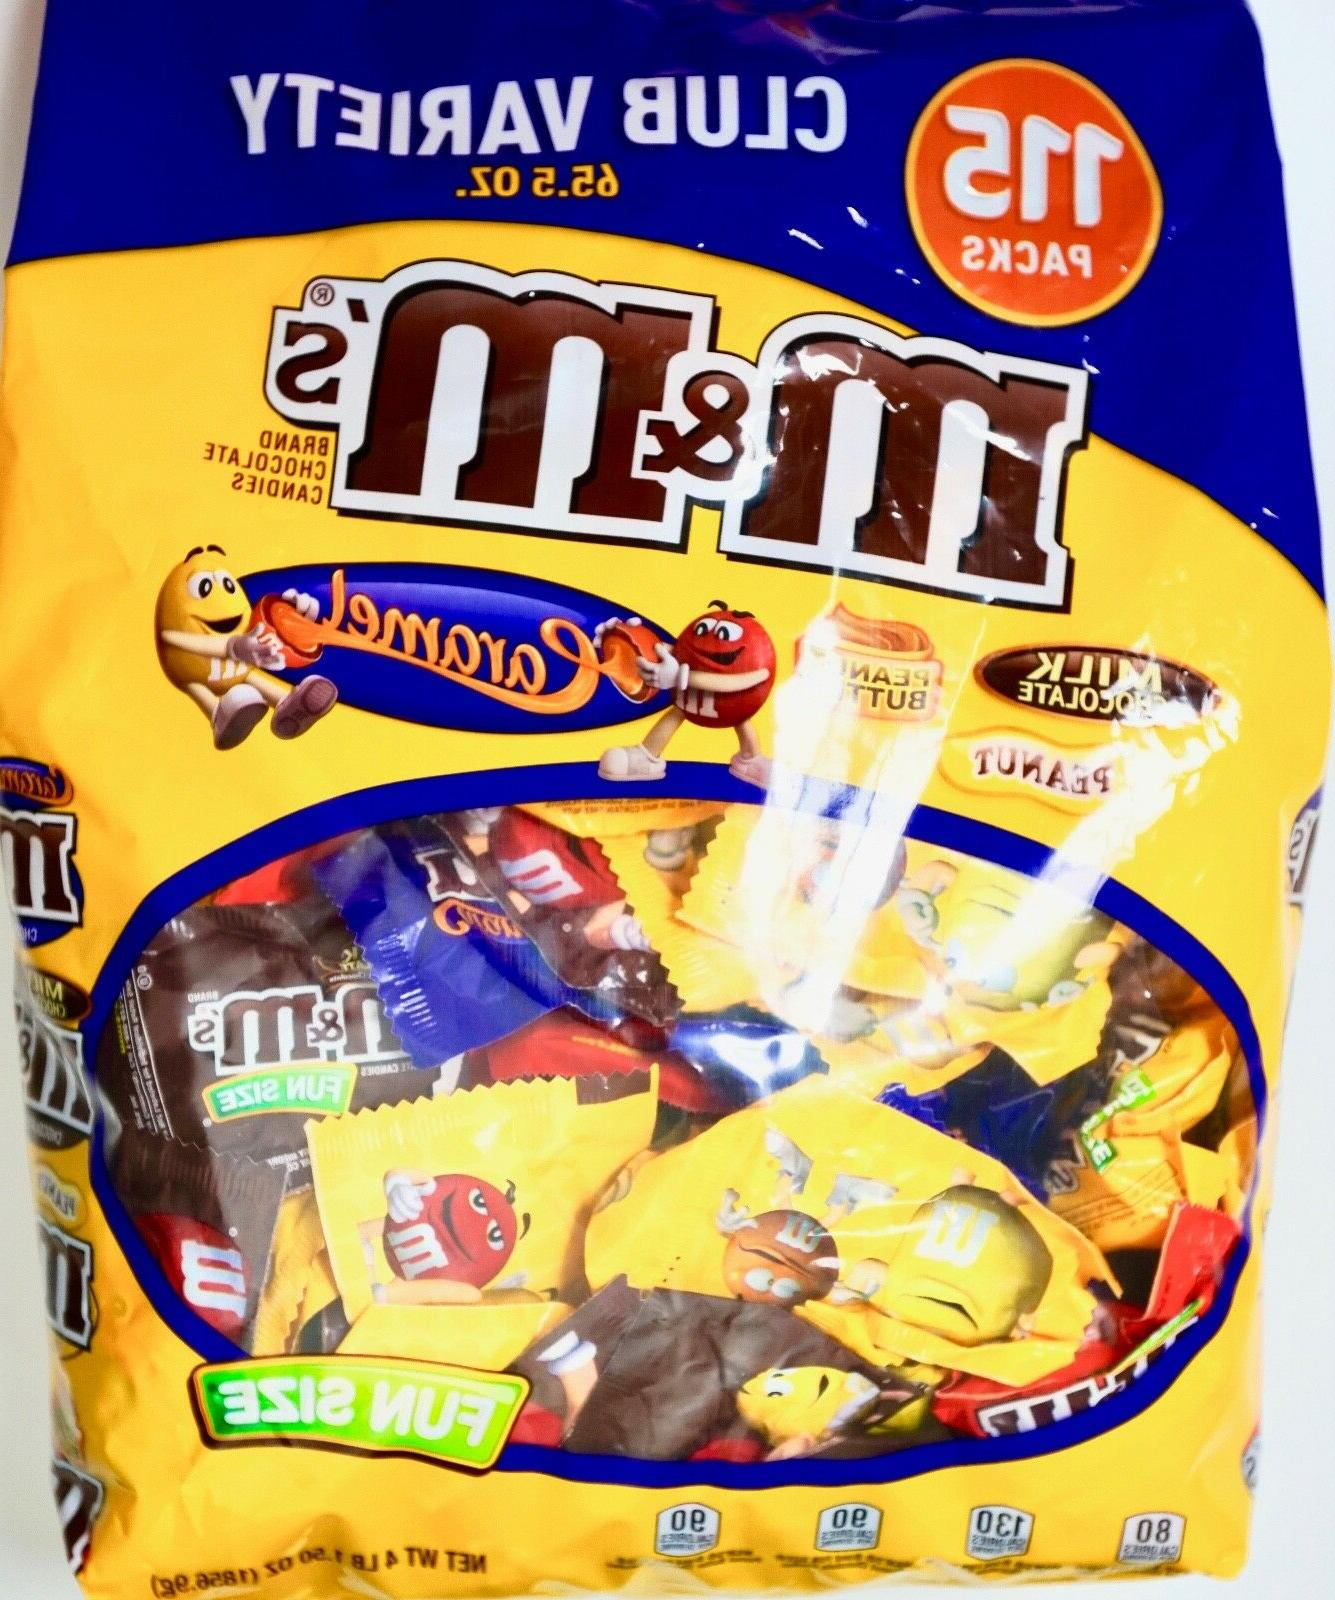 M&M's Club Variety Pack Fun-Size Milk Chocolate Peanut Butte